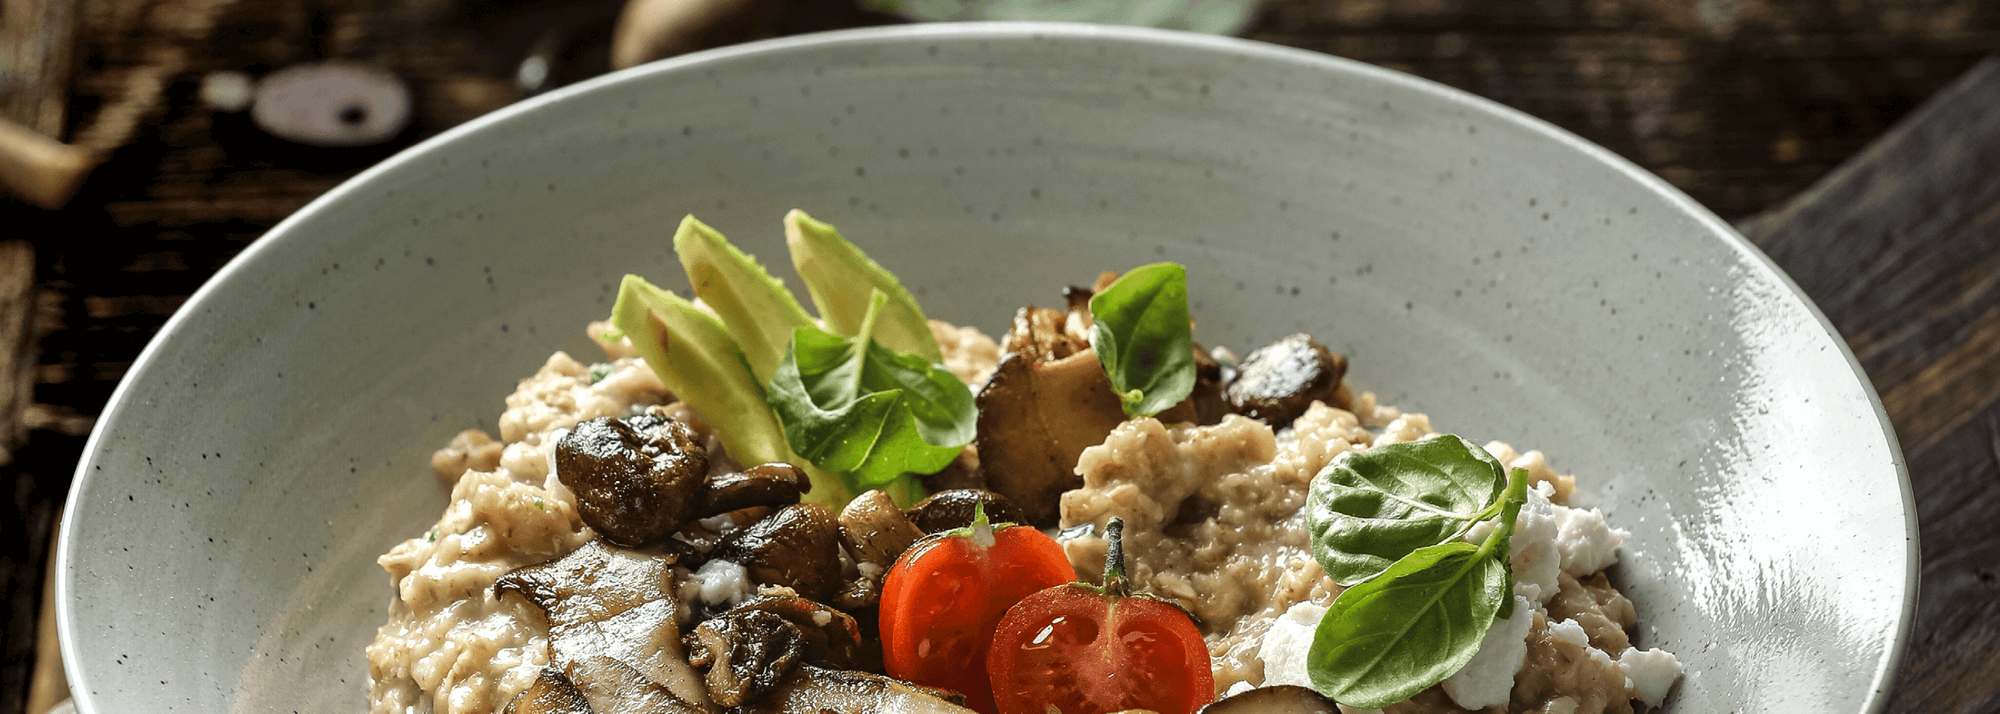 Spicy avocado porridge with wild mushrooms